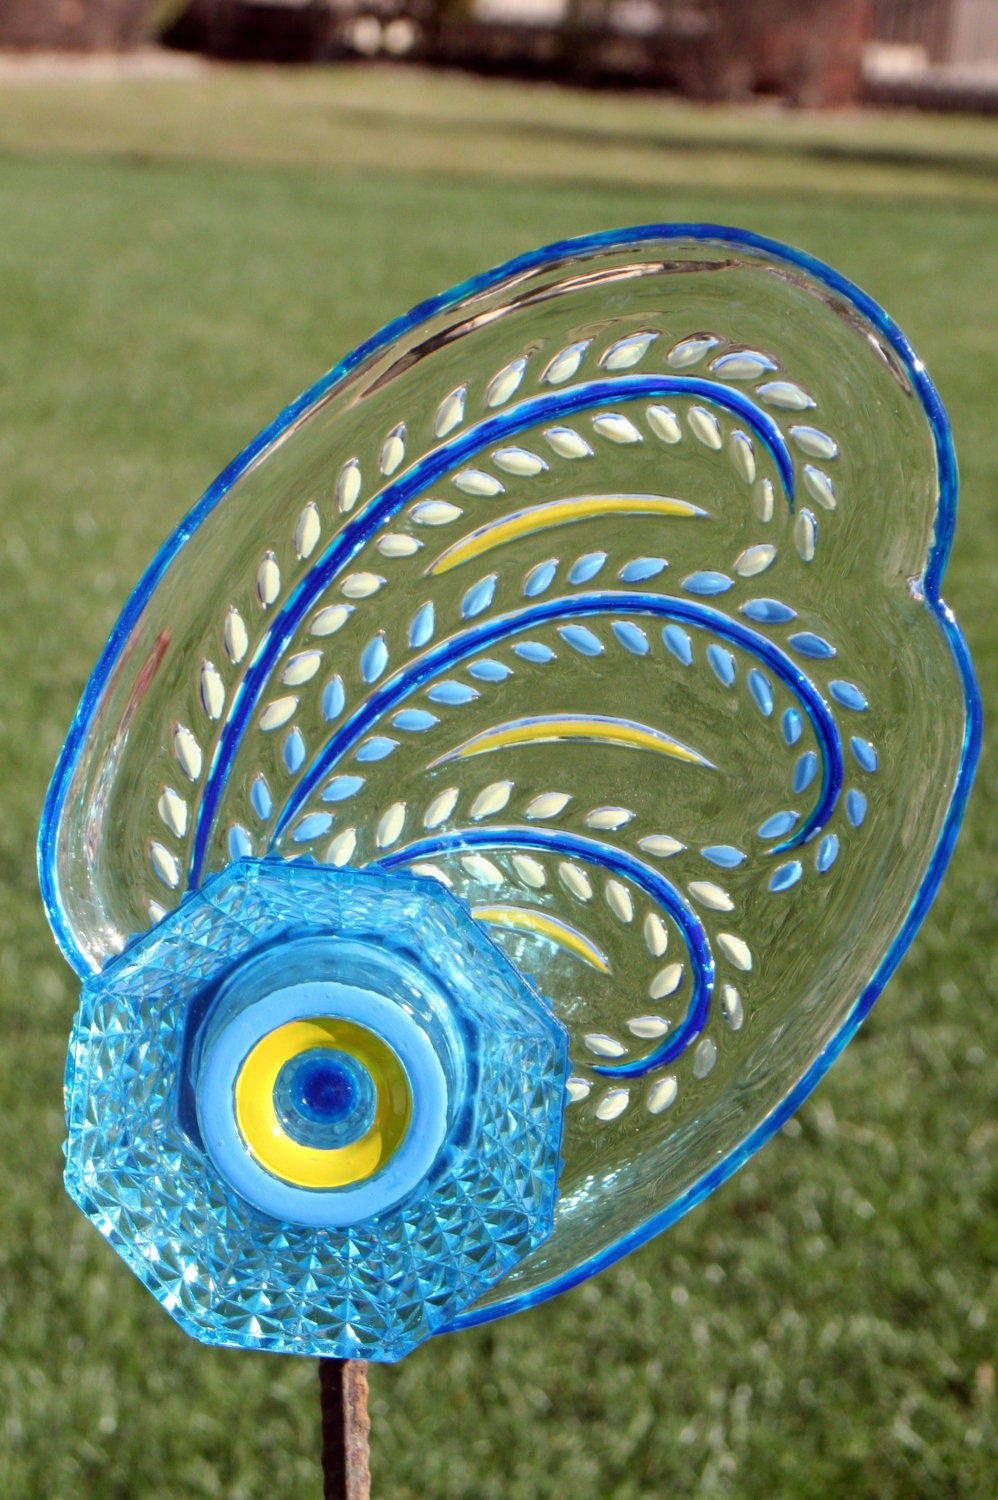 glass plate garden art and yard art with recycled glass on